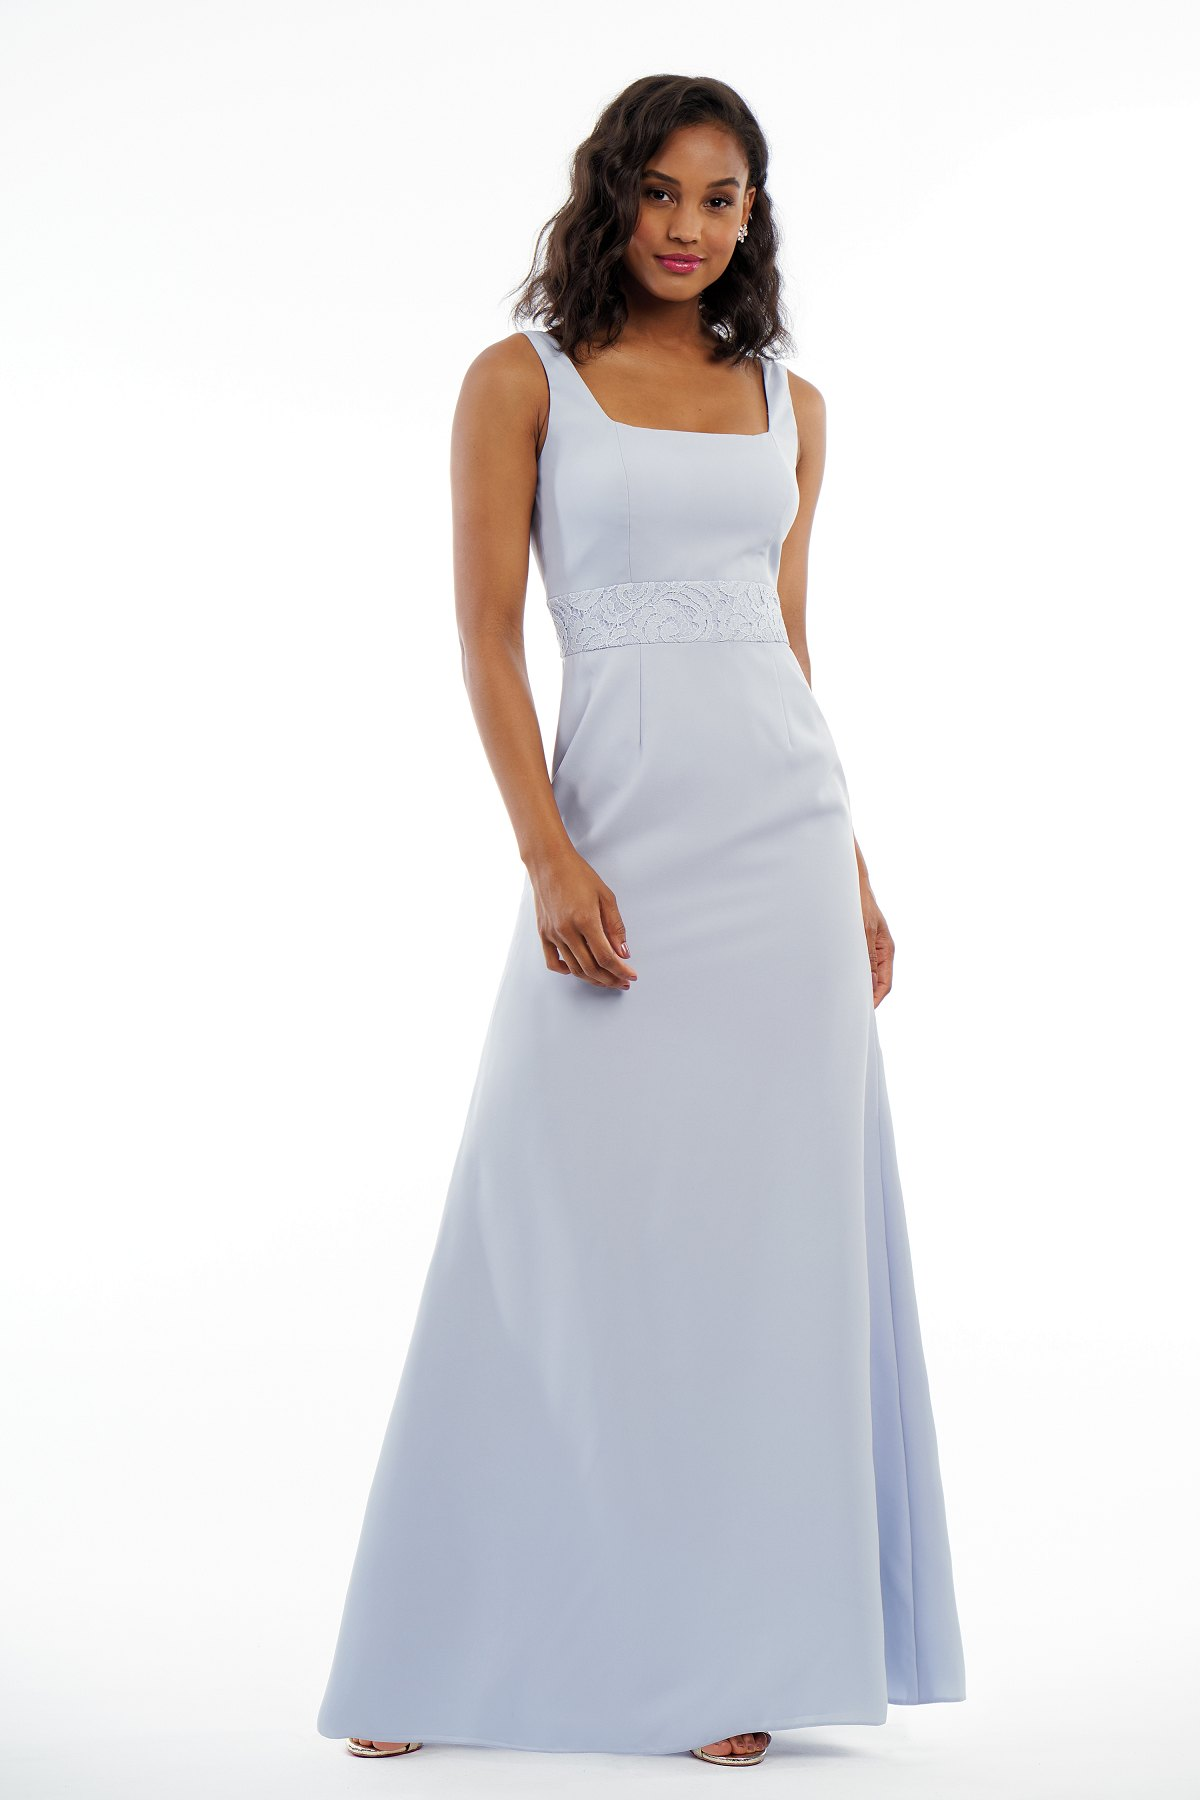 P216014 -  Simple soft crepe and lace floor length bridesmaid dress with a square neckline and thin cross straps on the back.    Available in 12 colors